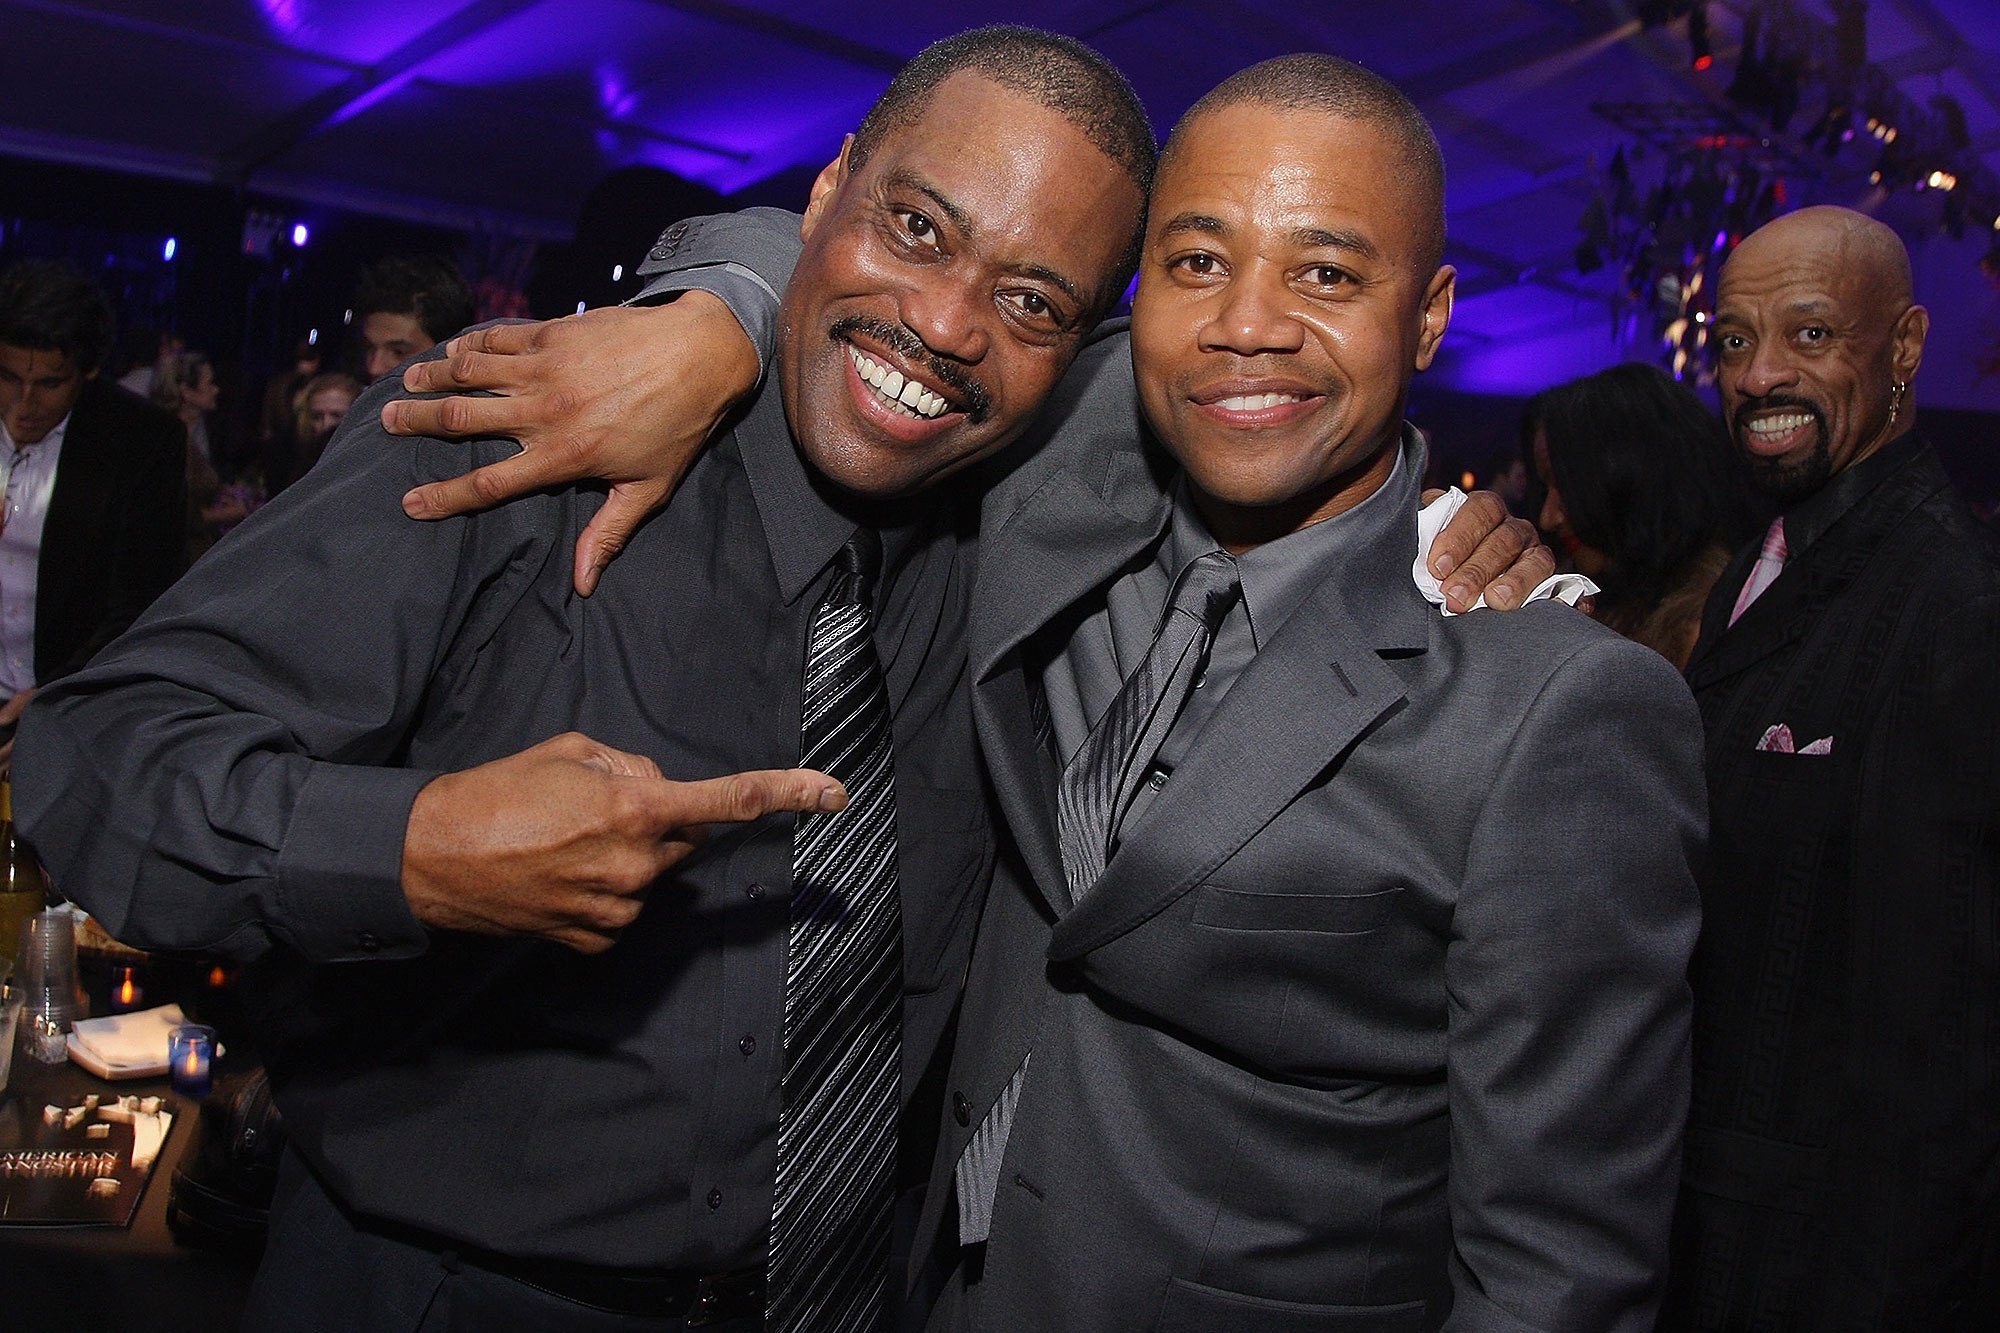 Cuba Gooding Jr. father found dead in car in Los Angeles ...